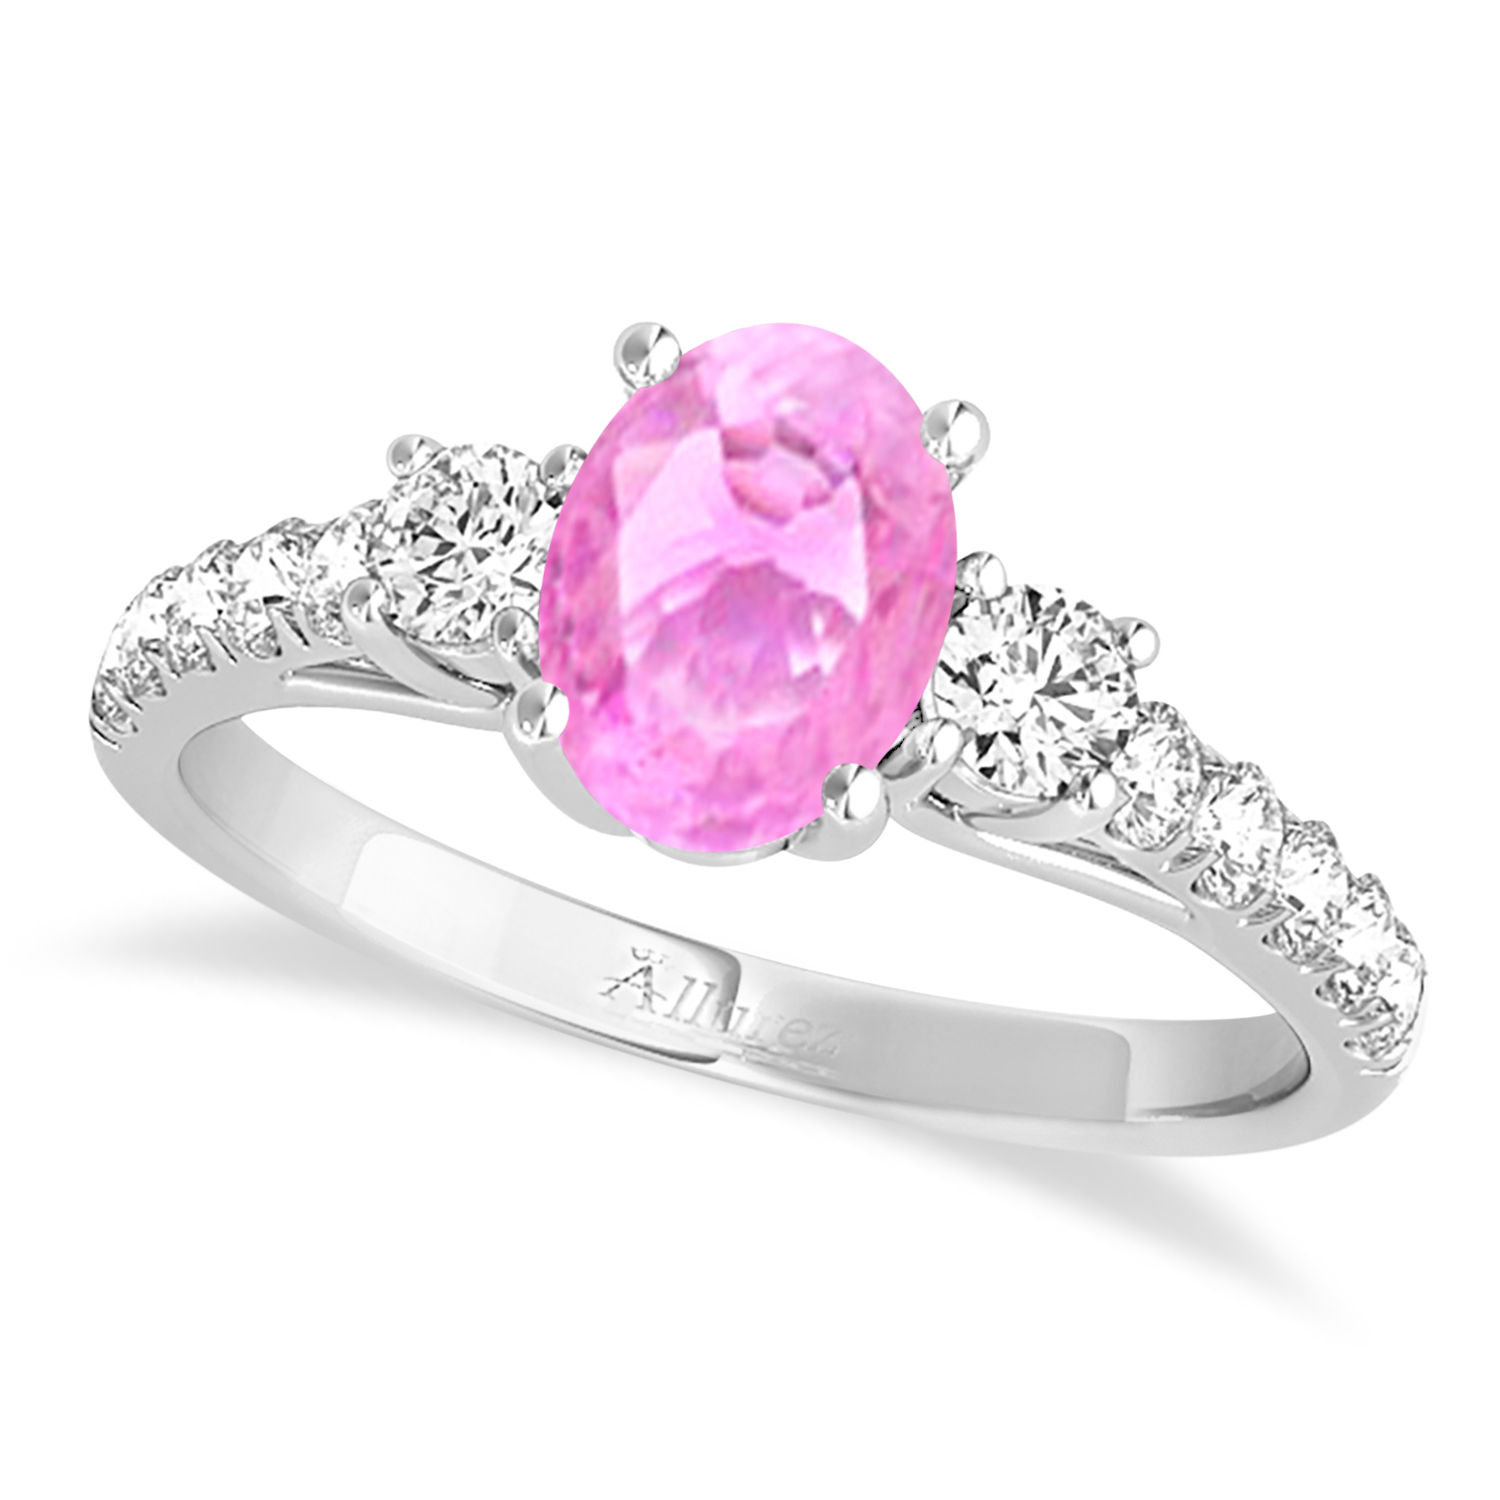 Oval Cut Pink Sapphire & Diamond Engagement Ring Palladium 1.15ct ...